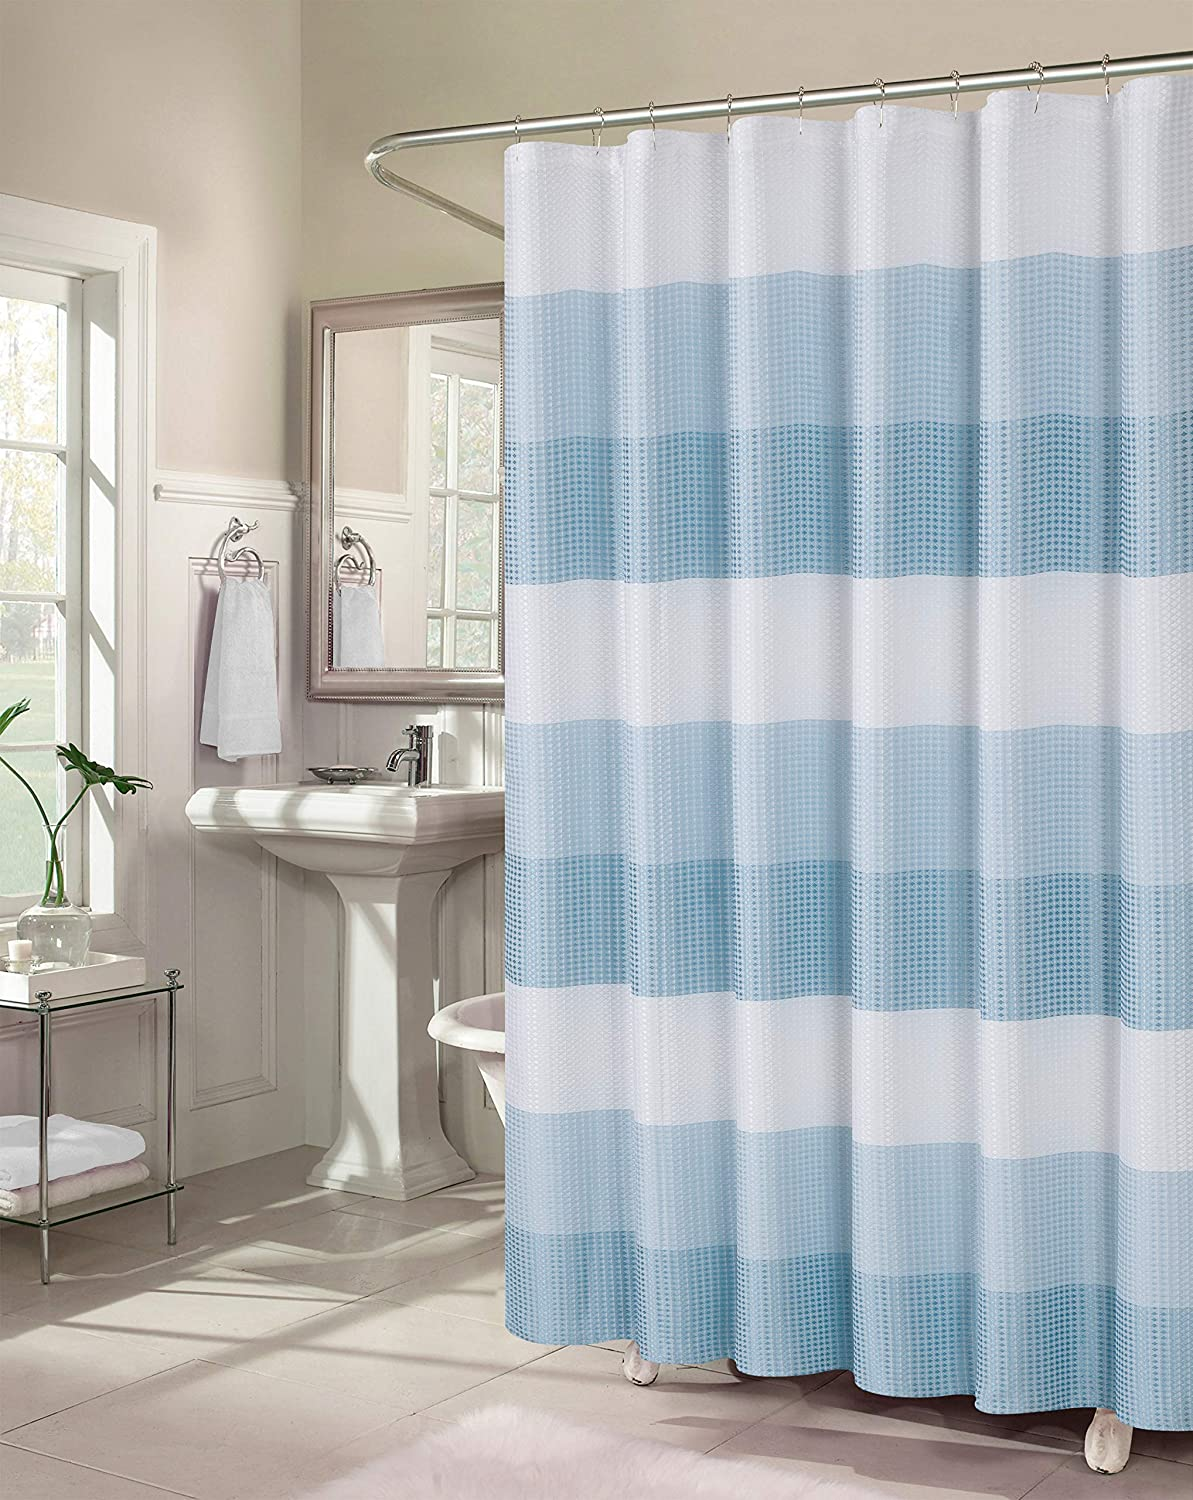 Dainty Home Ombre Waffle Weave Fabric Shower Curtain in Aqua